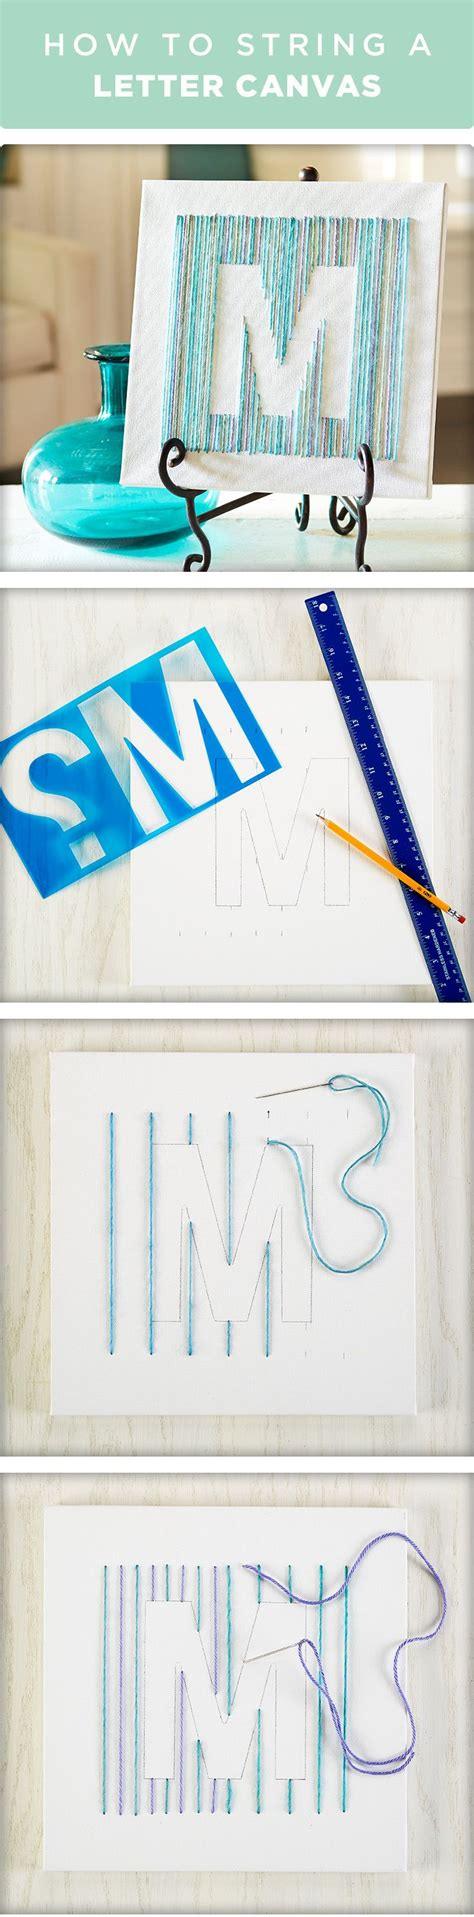 How To String Letters - free yarn class yarn letter canvas knutselen creatief